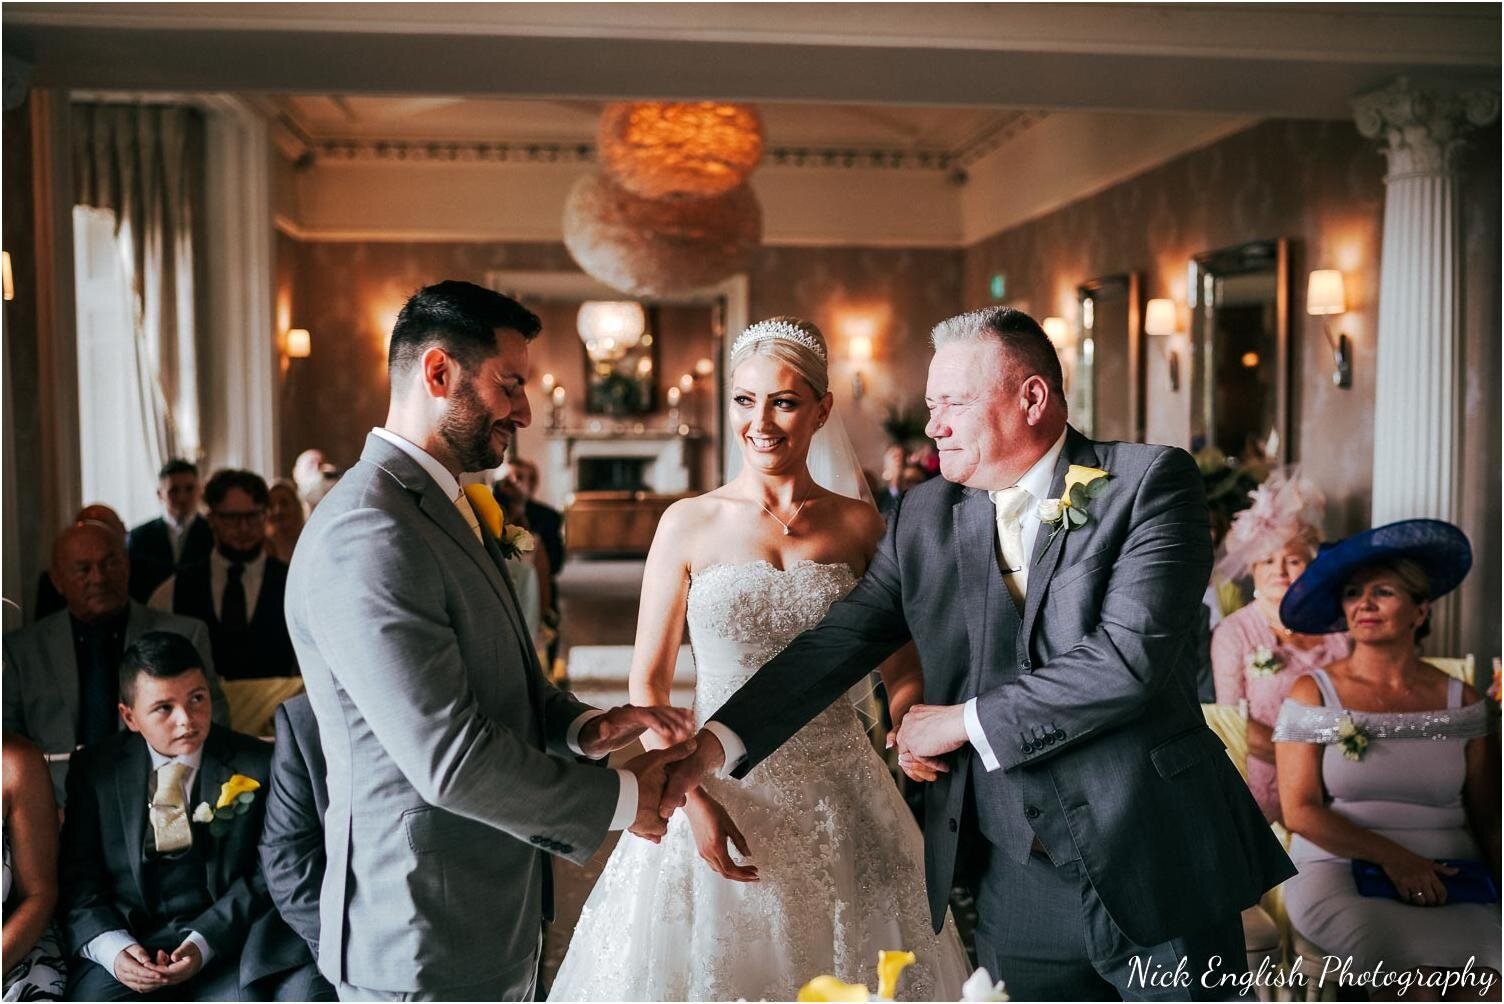 Falcon_Manor_Yorkshire_Wedding_Photographer-36.jpg